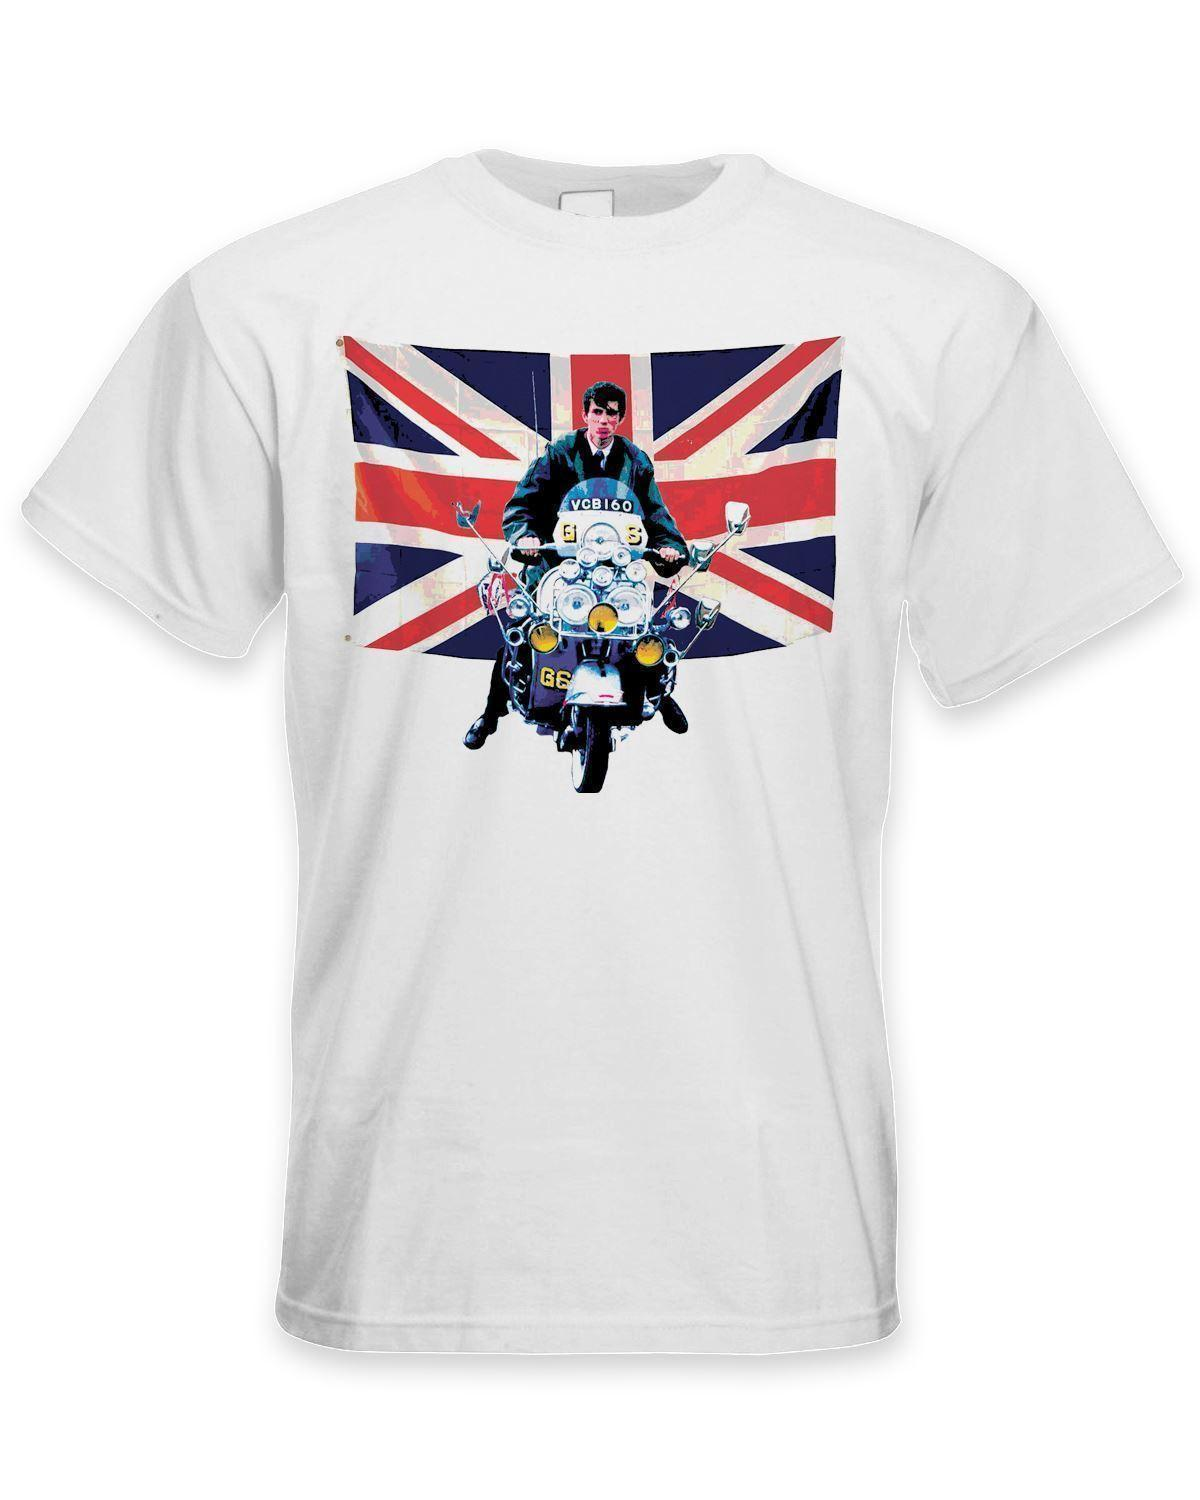 17fdc7f33d7936 Union Jack Scooter Mod Men S T Shirt Jam Fashion The Who Quadrophenia New  Metal Short Sleeve Casual Shirt Online T Shirt Shopping Print On T Shirt  From ...